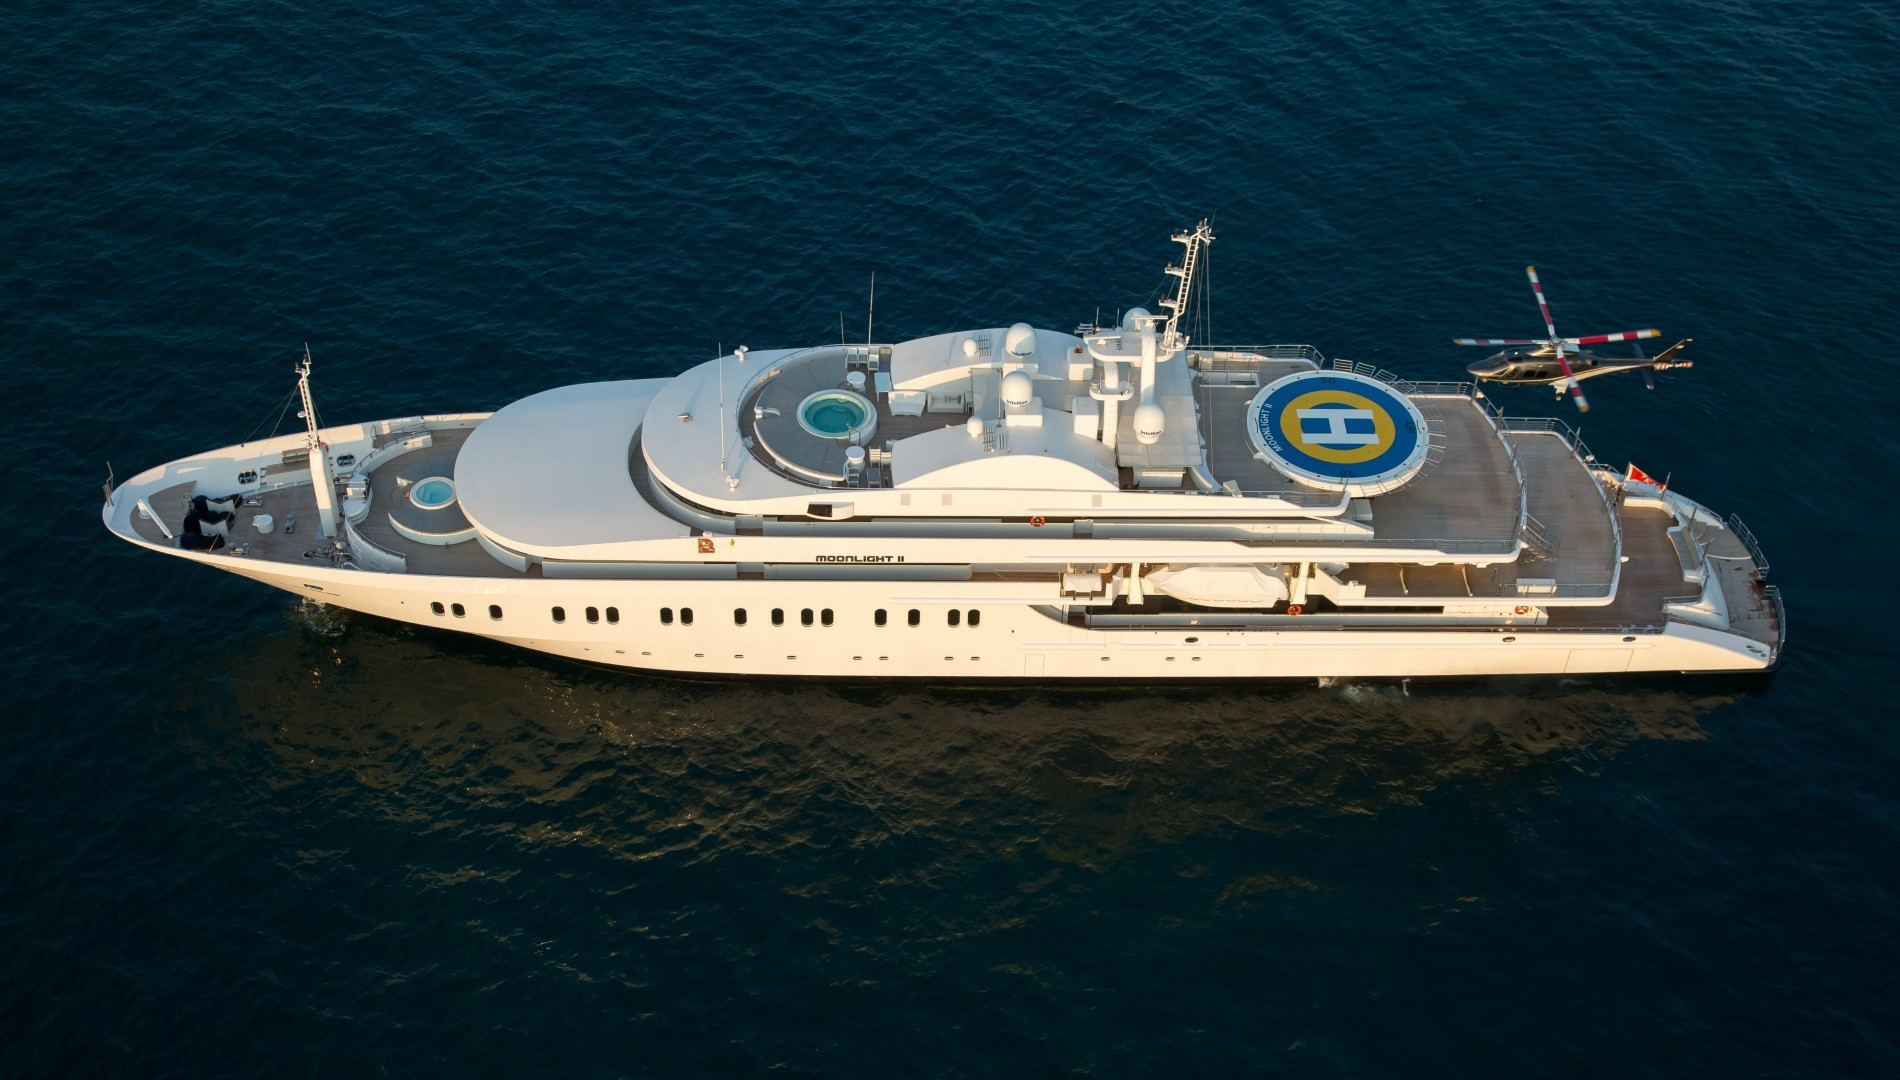 Imperial Sea Marine | Moonlight II Luxury Yacht for Charter